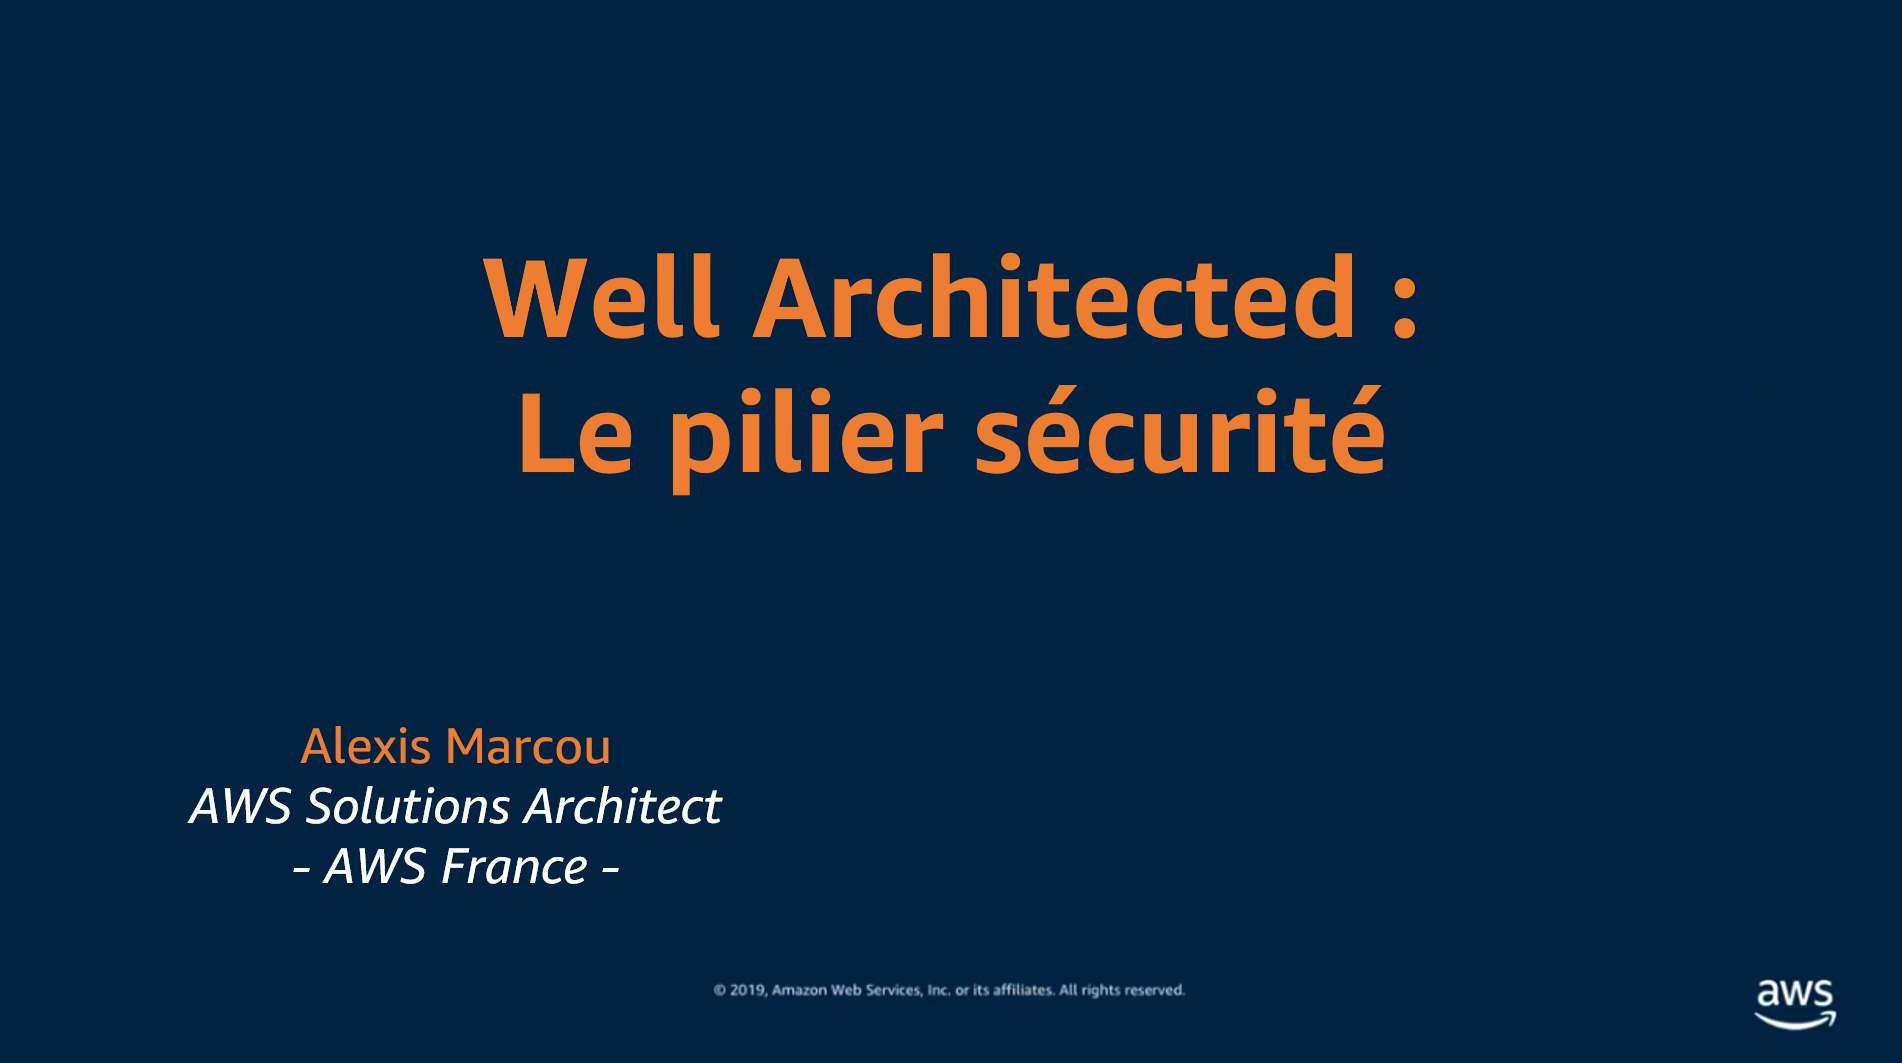 WellArchitected